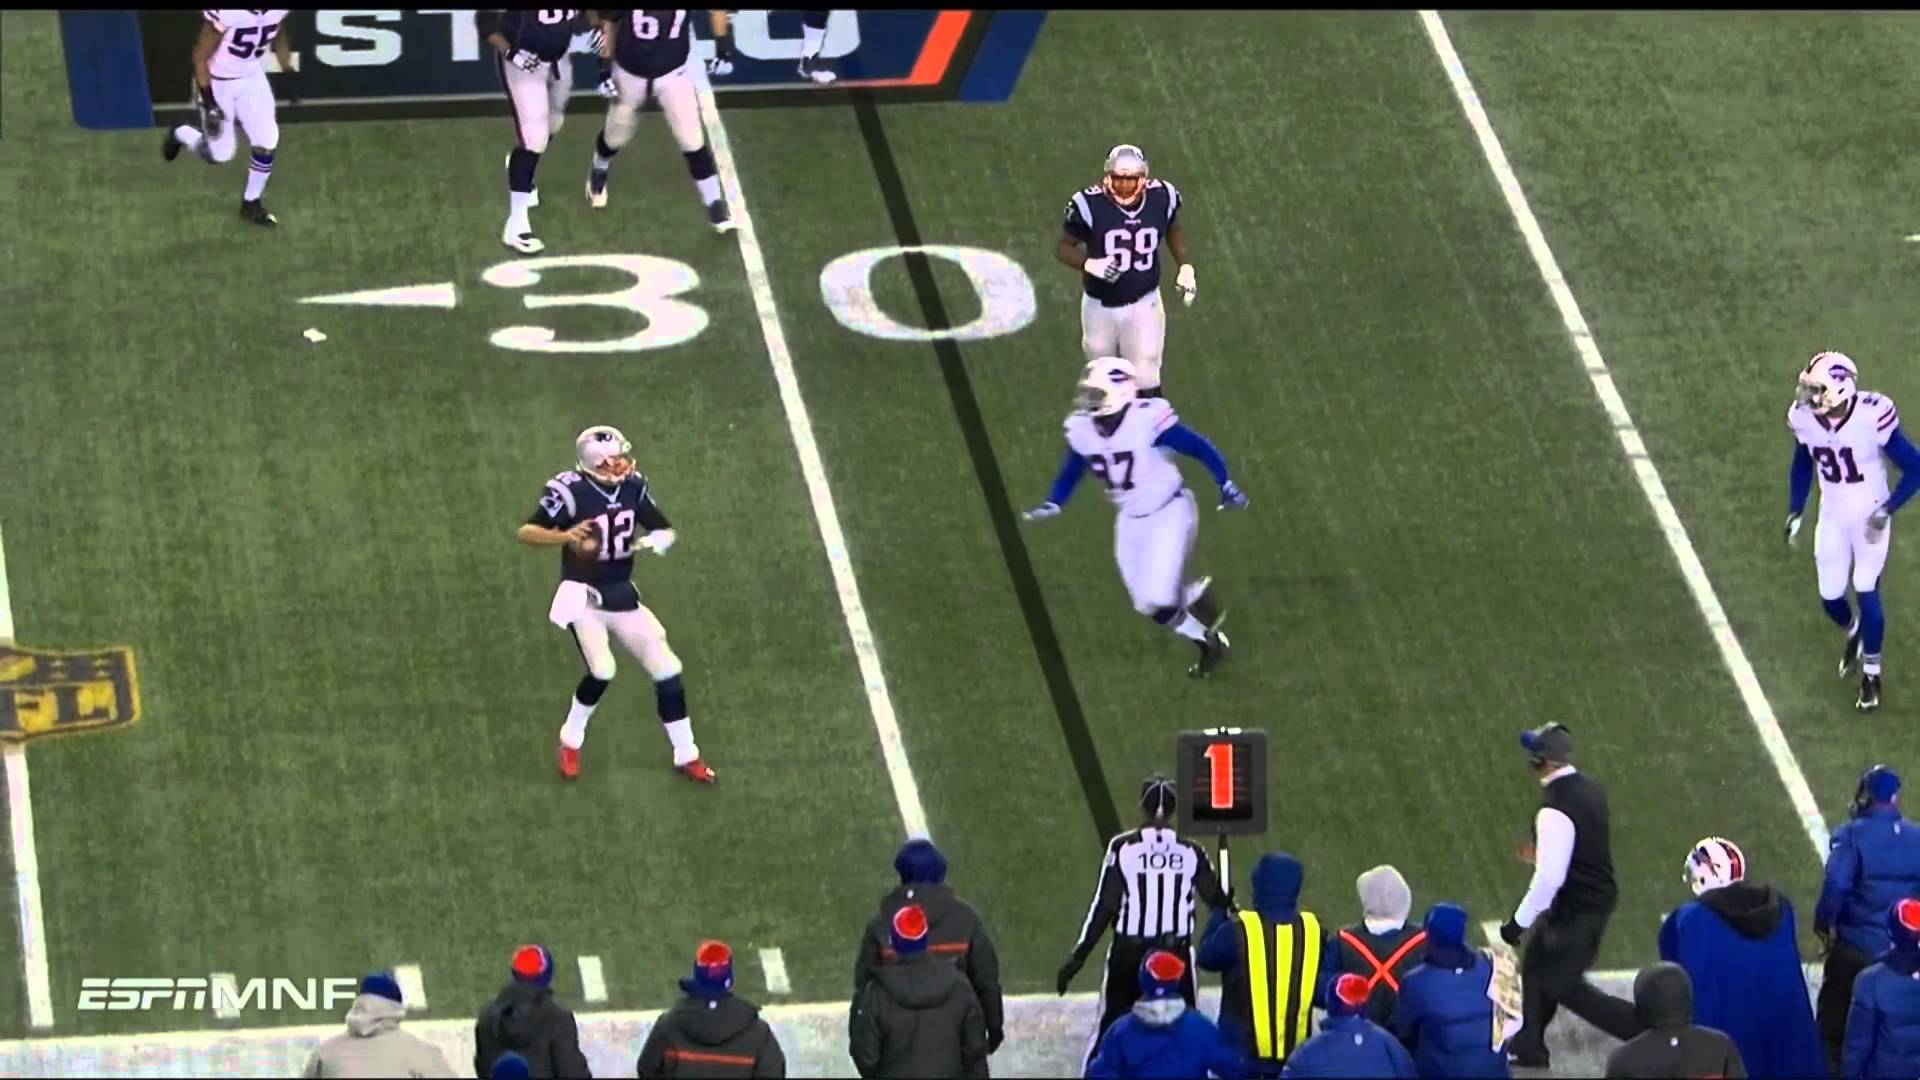 Refs inadvertent whistle costs Patriots a potential touchdown